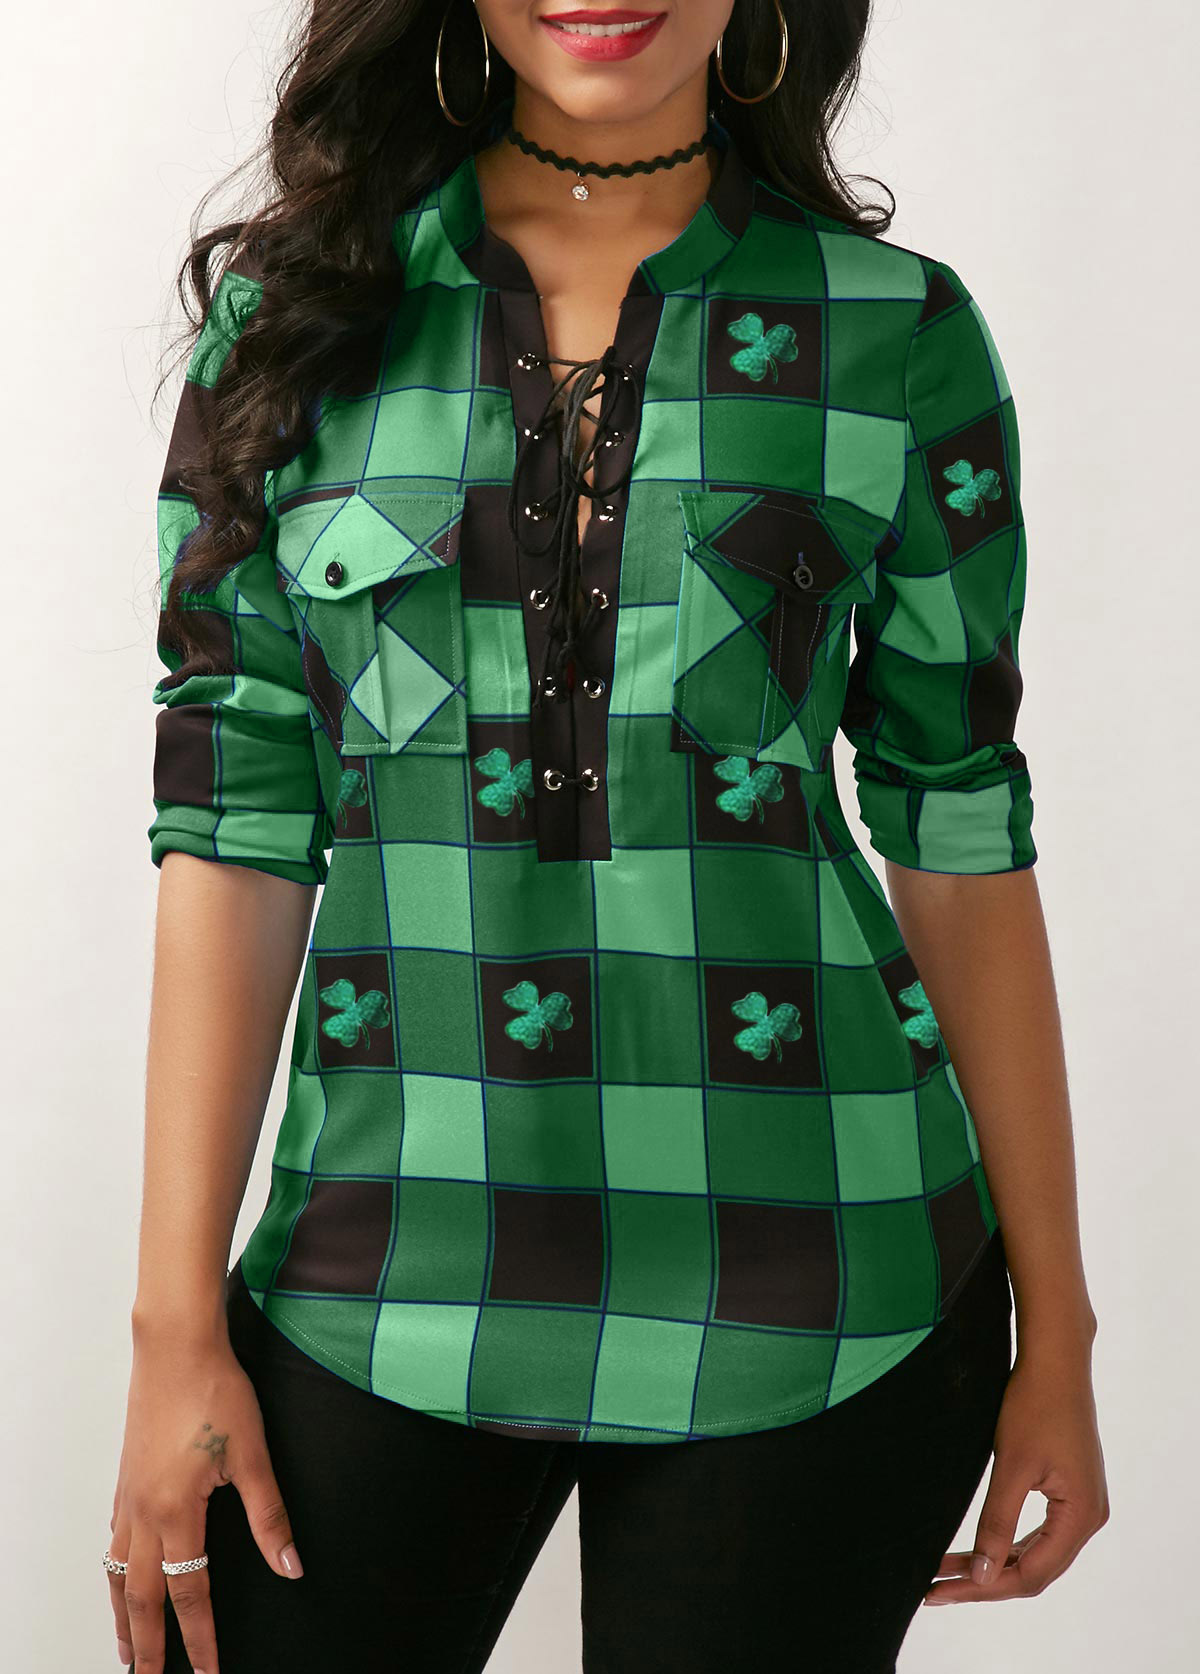 Lace Up Front Plaid Print ST Patricks Day Blouse